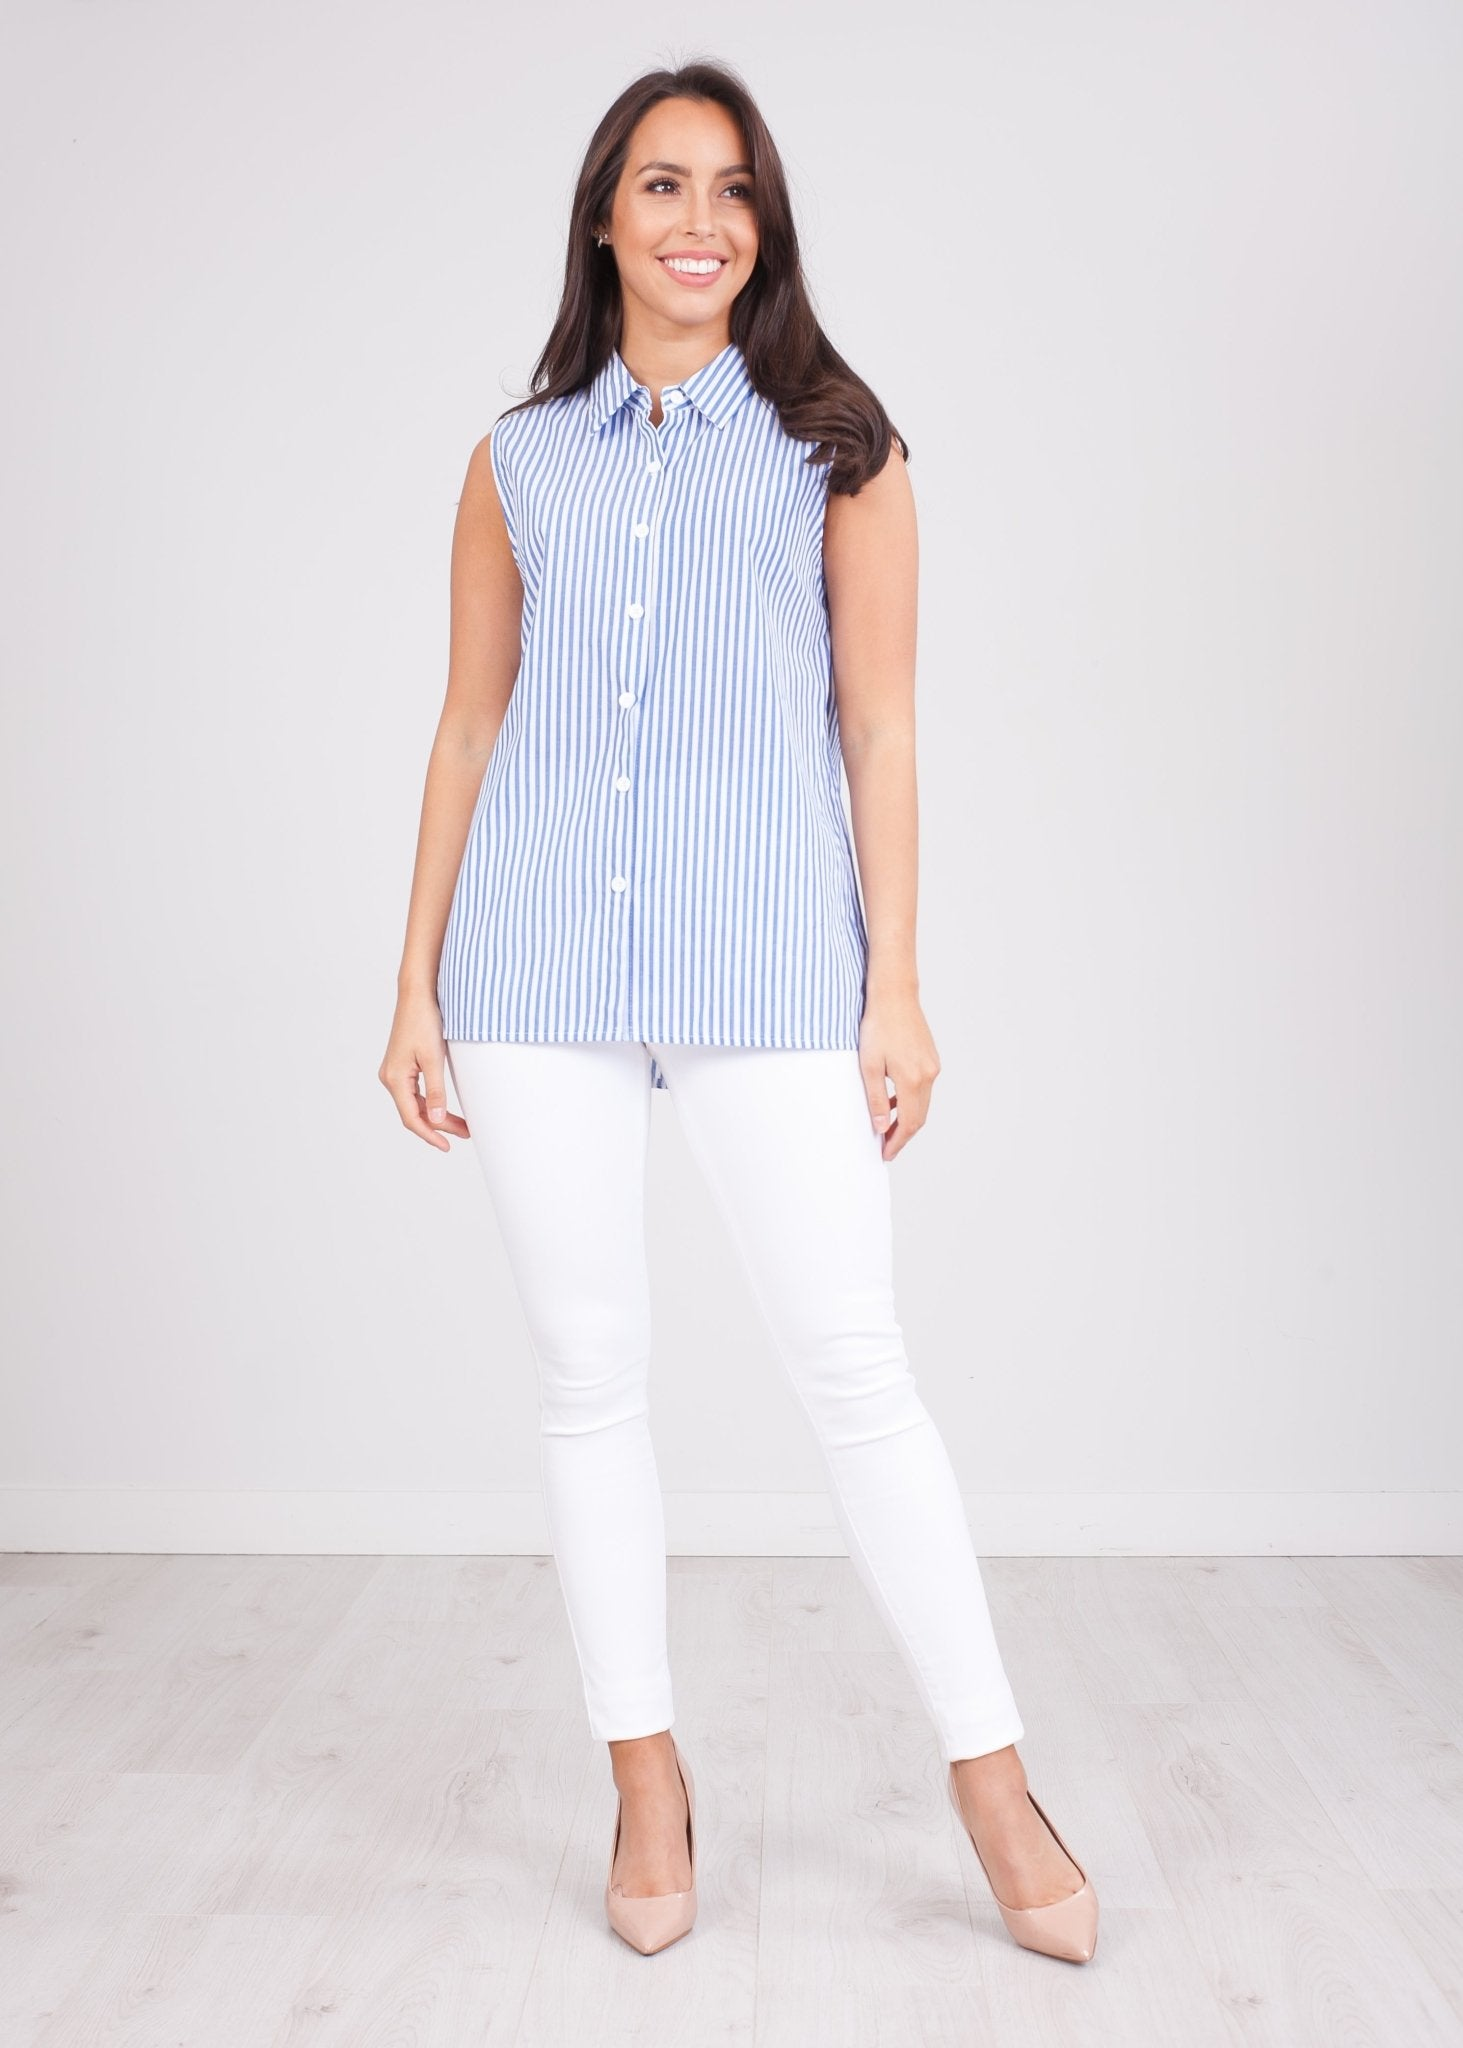 Sissy Blue Stripe Sleeveless Blouse - The Walk in Wardrobe